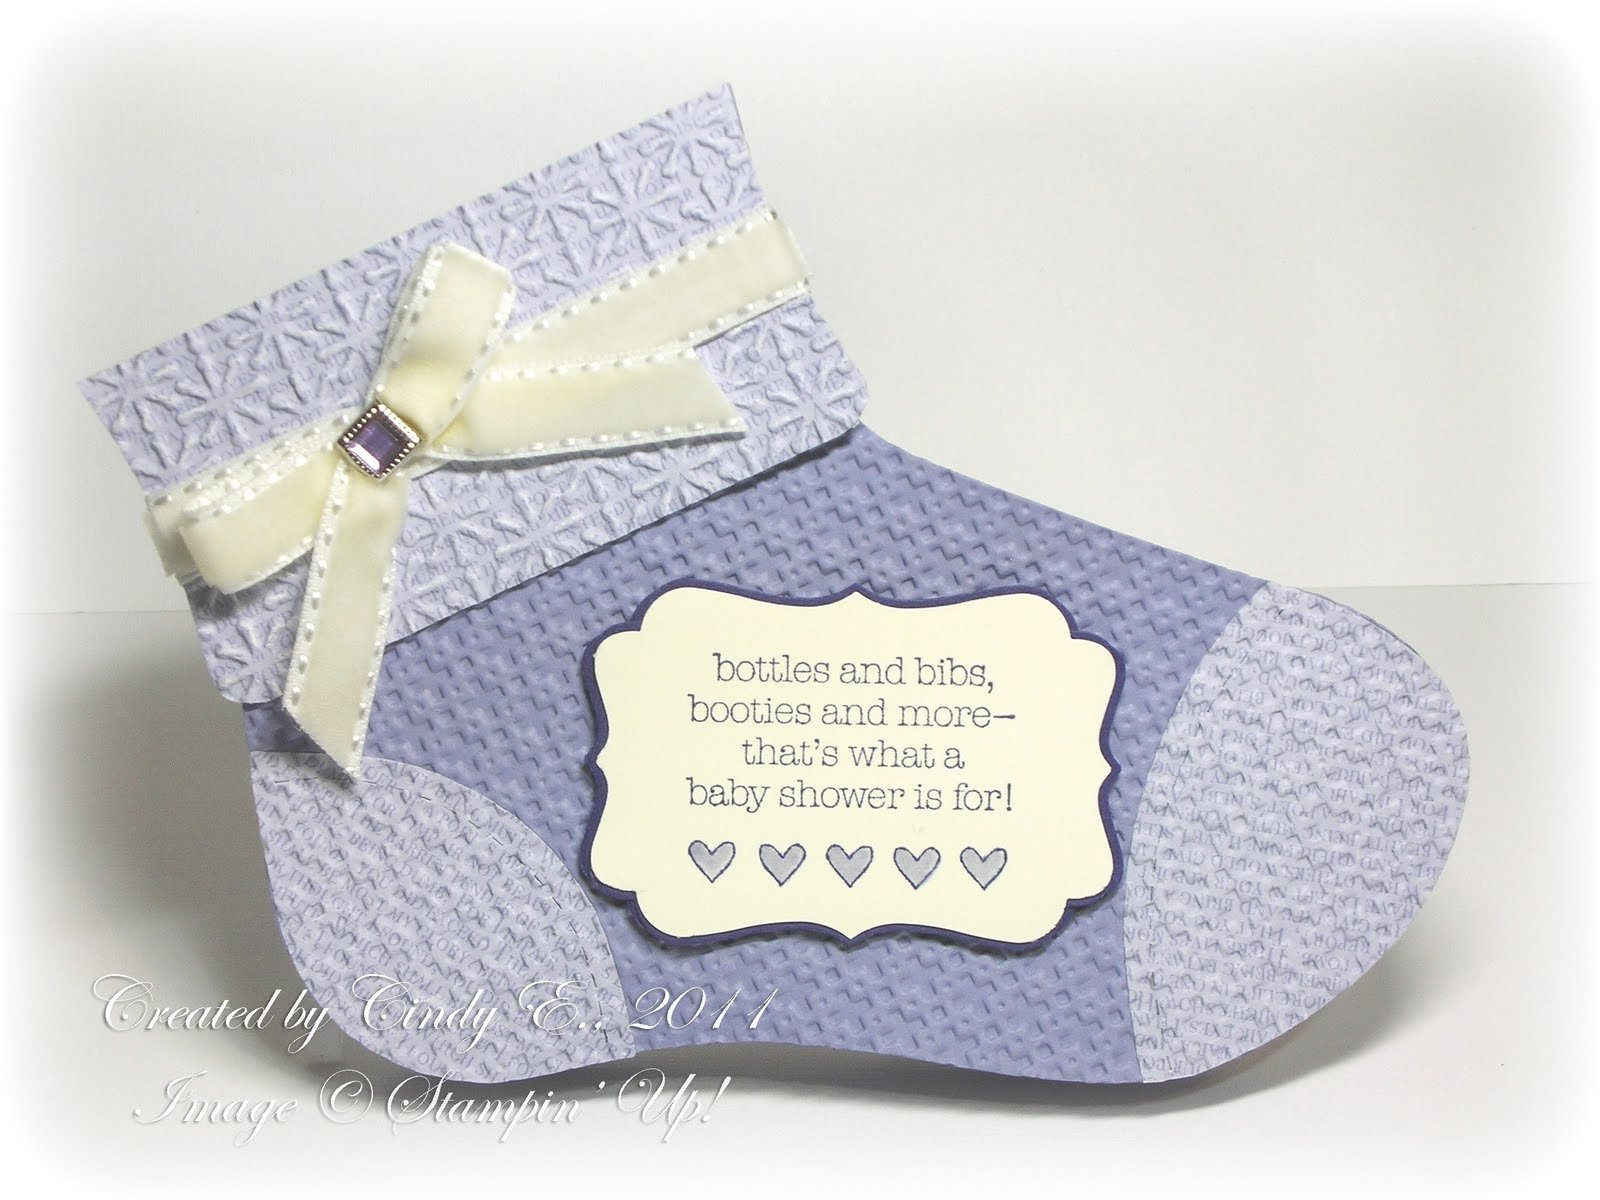 10 Fashionable Ideas For Baby Shower Invitations funny baby shower invitations 22 background wallpaper funnypicture 2021